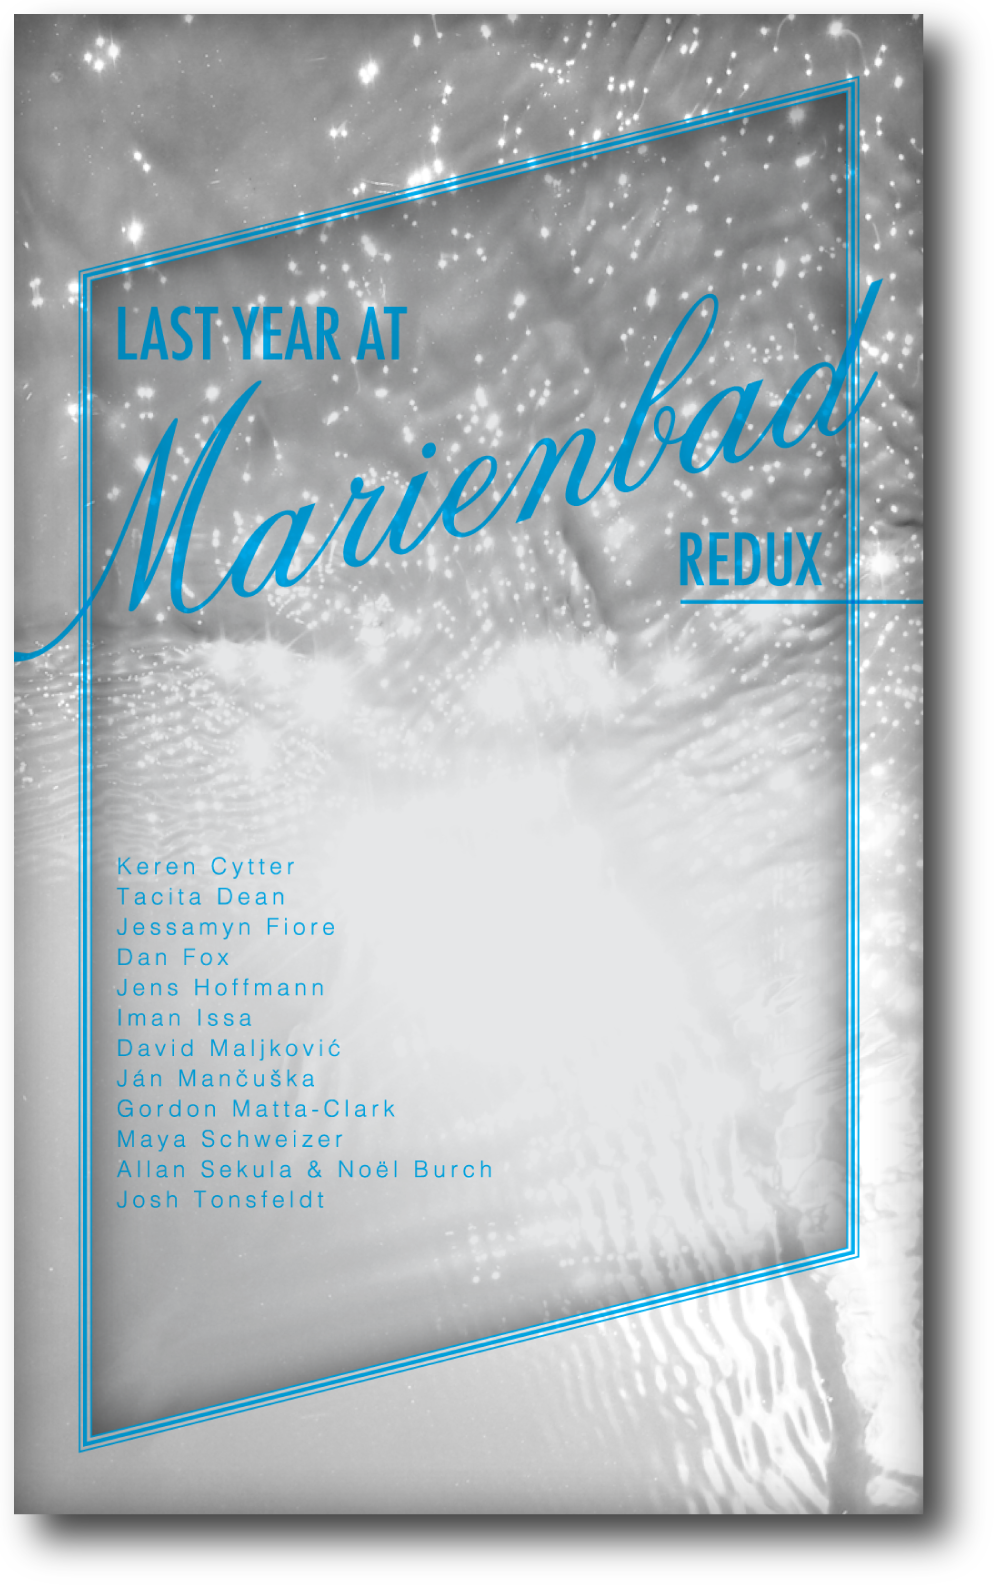 Last Year at Marienbad redux , published by Bureau for Open Culture, 2013; designed by Nate Padavick;80 pages;11 x 6.67 inches